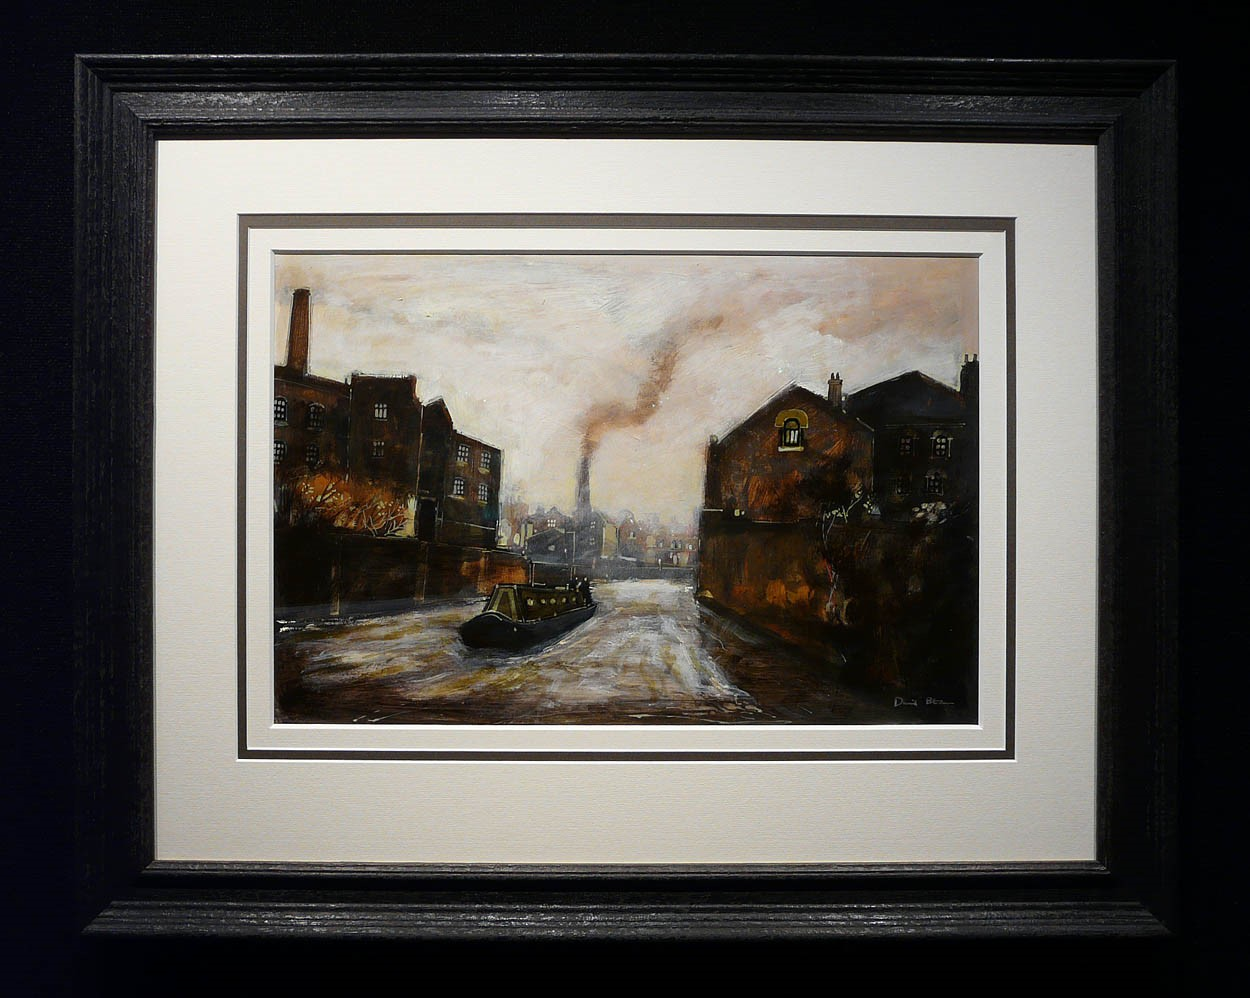 The Barge by David Bez